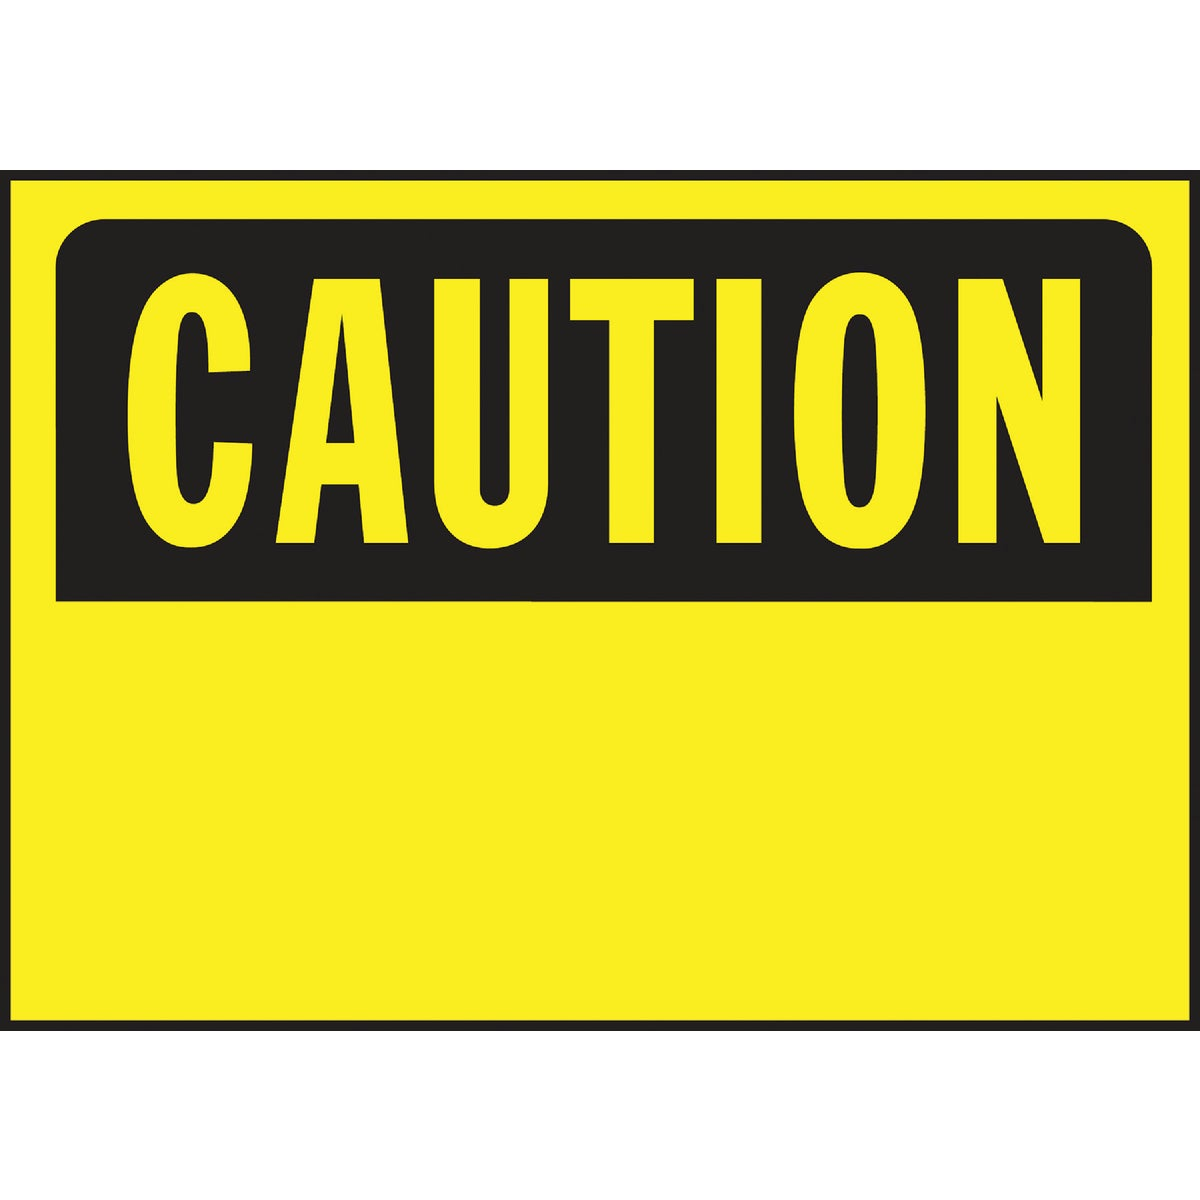 10X14 CAUTION SIGN